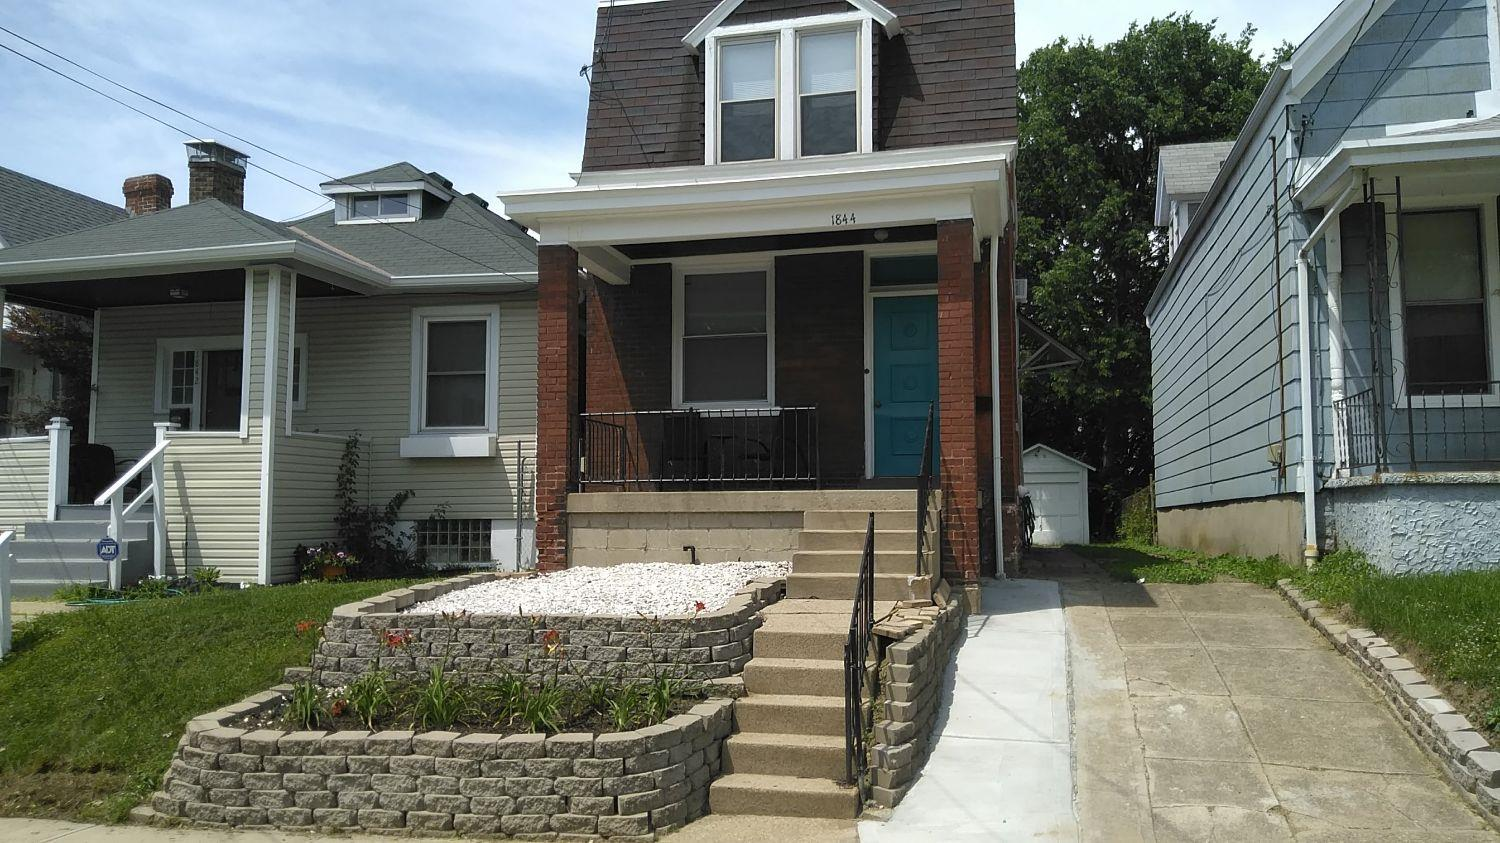 1844 Cleveland Ave Norwood Oh 45212 Listing Details Mls